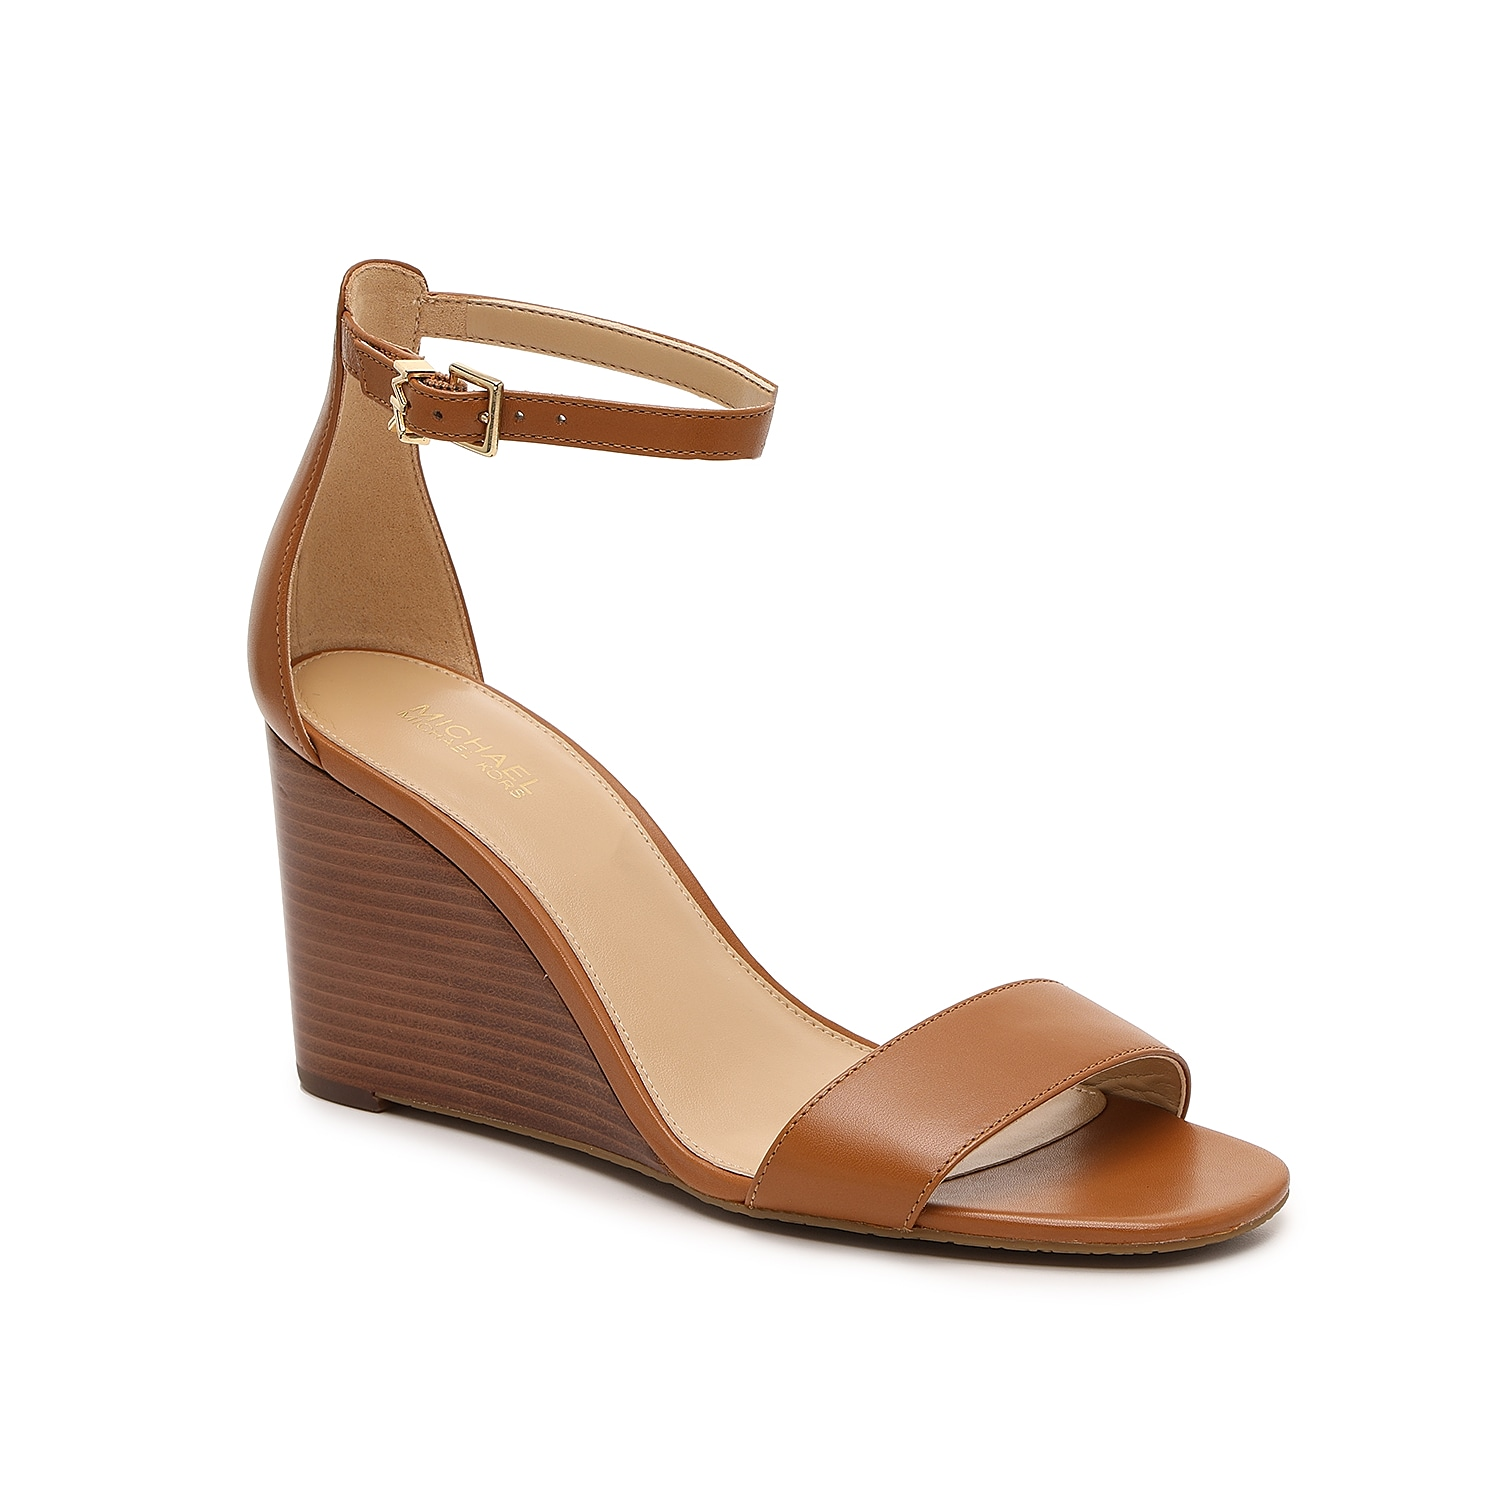 Strut your stuff with the leather Fiona wedge sandal from Michael Michael Kors. This elevated pair is fashioned with a squared off toe and stacked heel for all the heel!